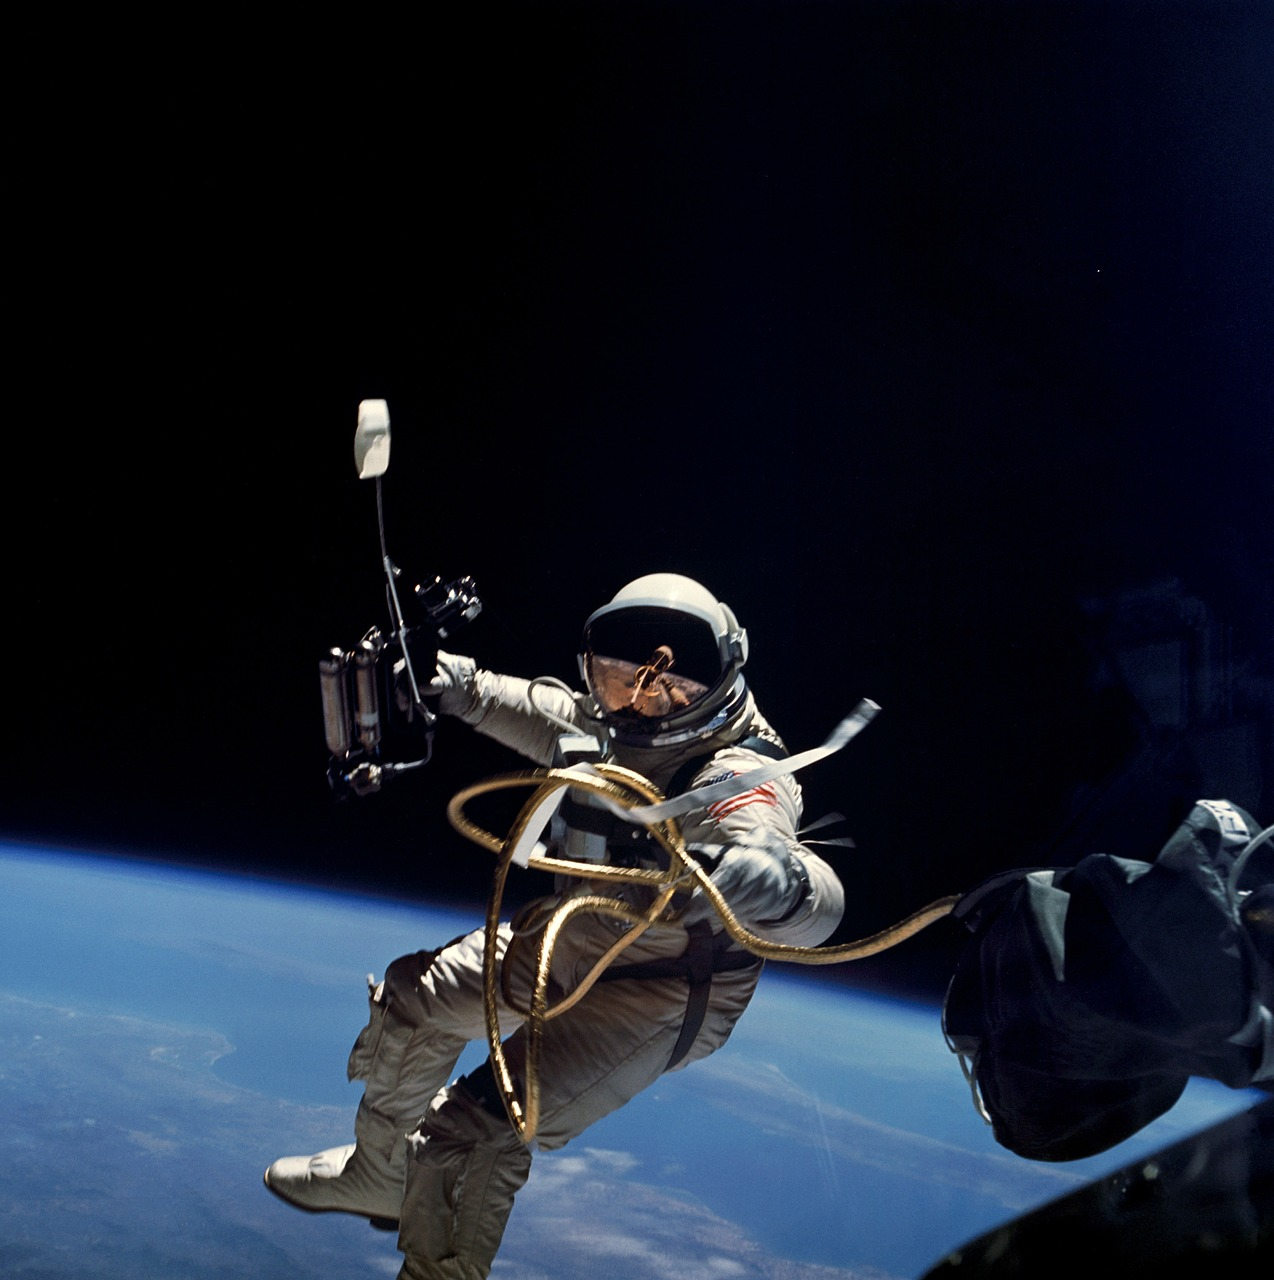 space nasa astronaut free photo